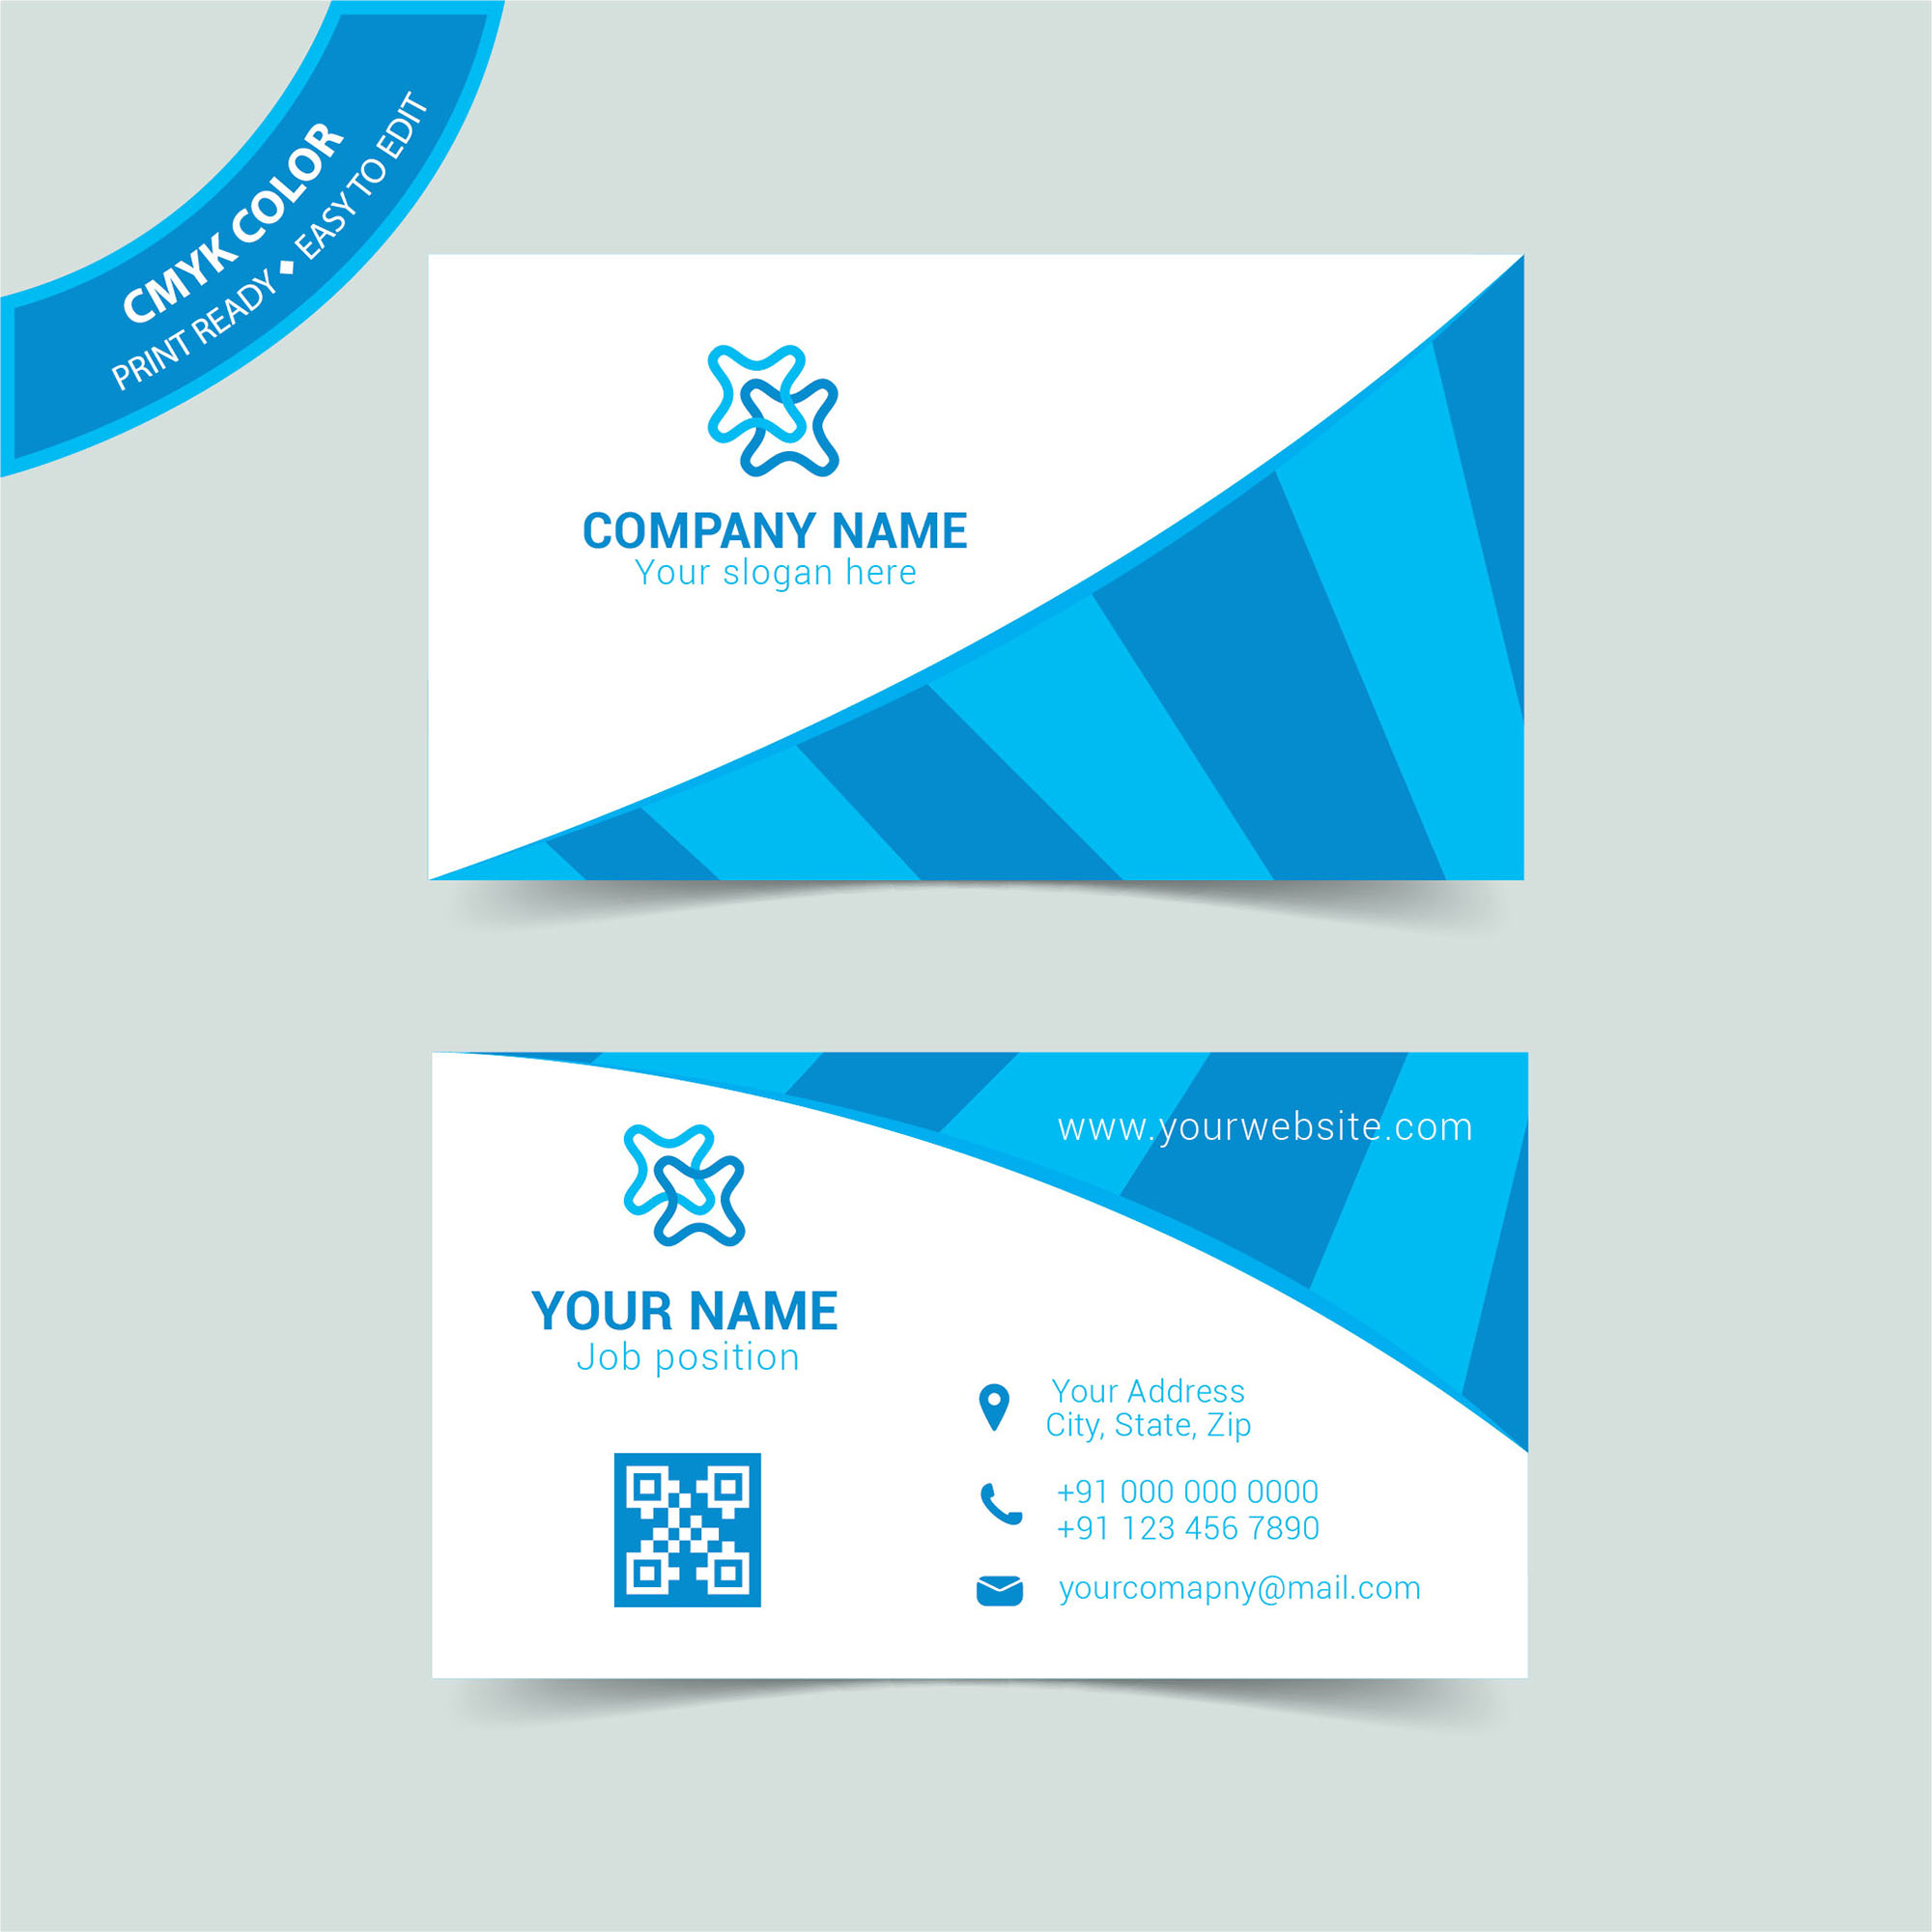 Professional business card templates free download wisxi business card business cards business card design business card template design templates fbccfo Image collections